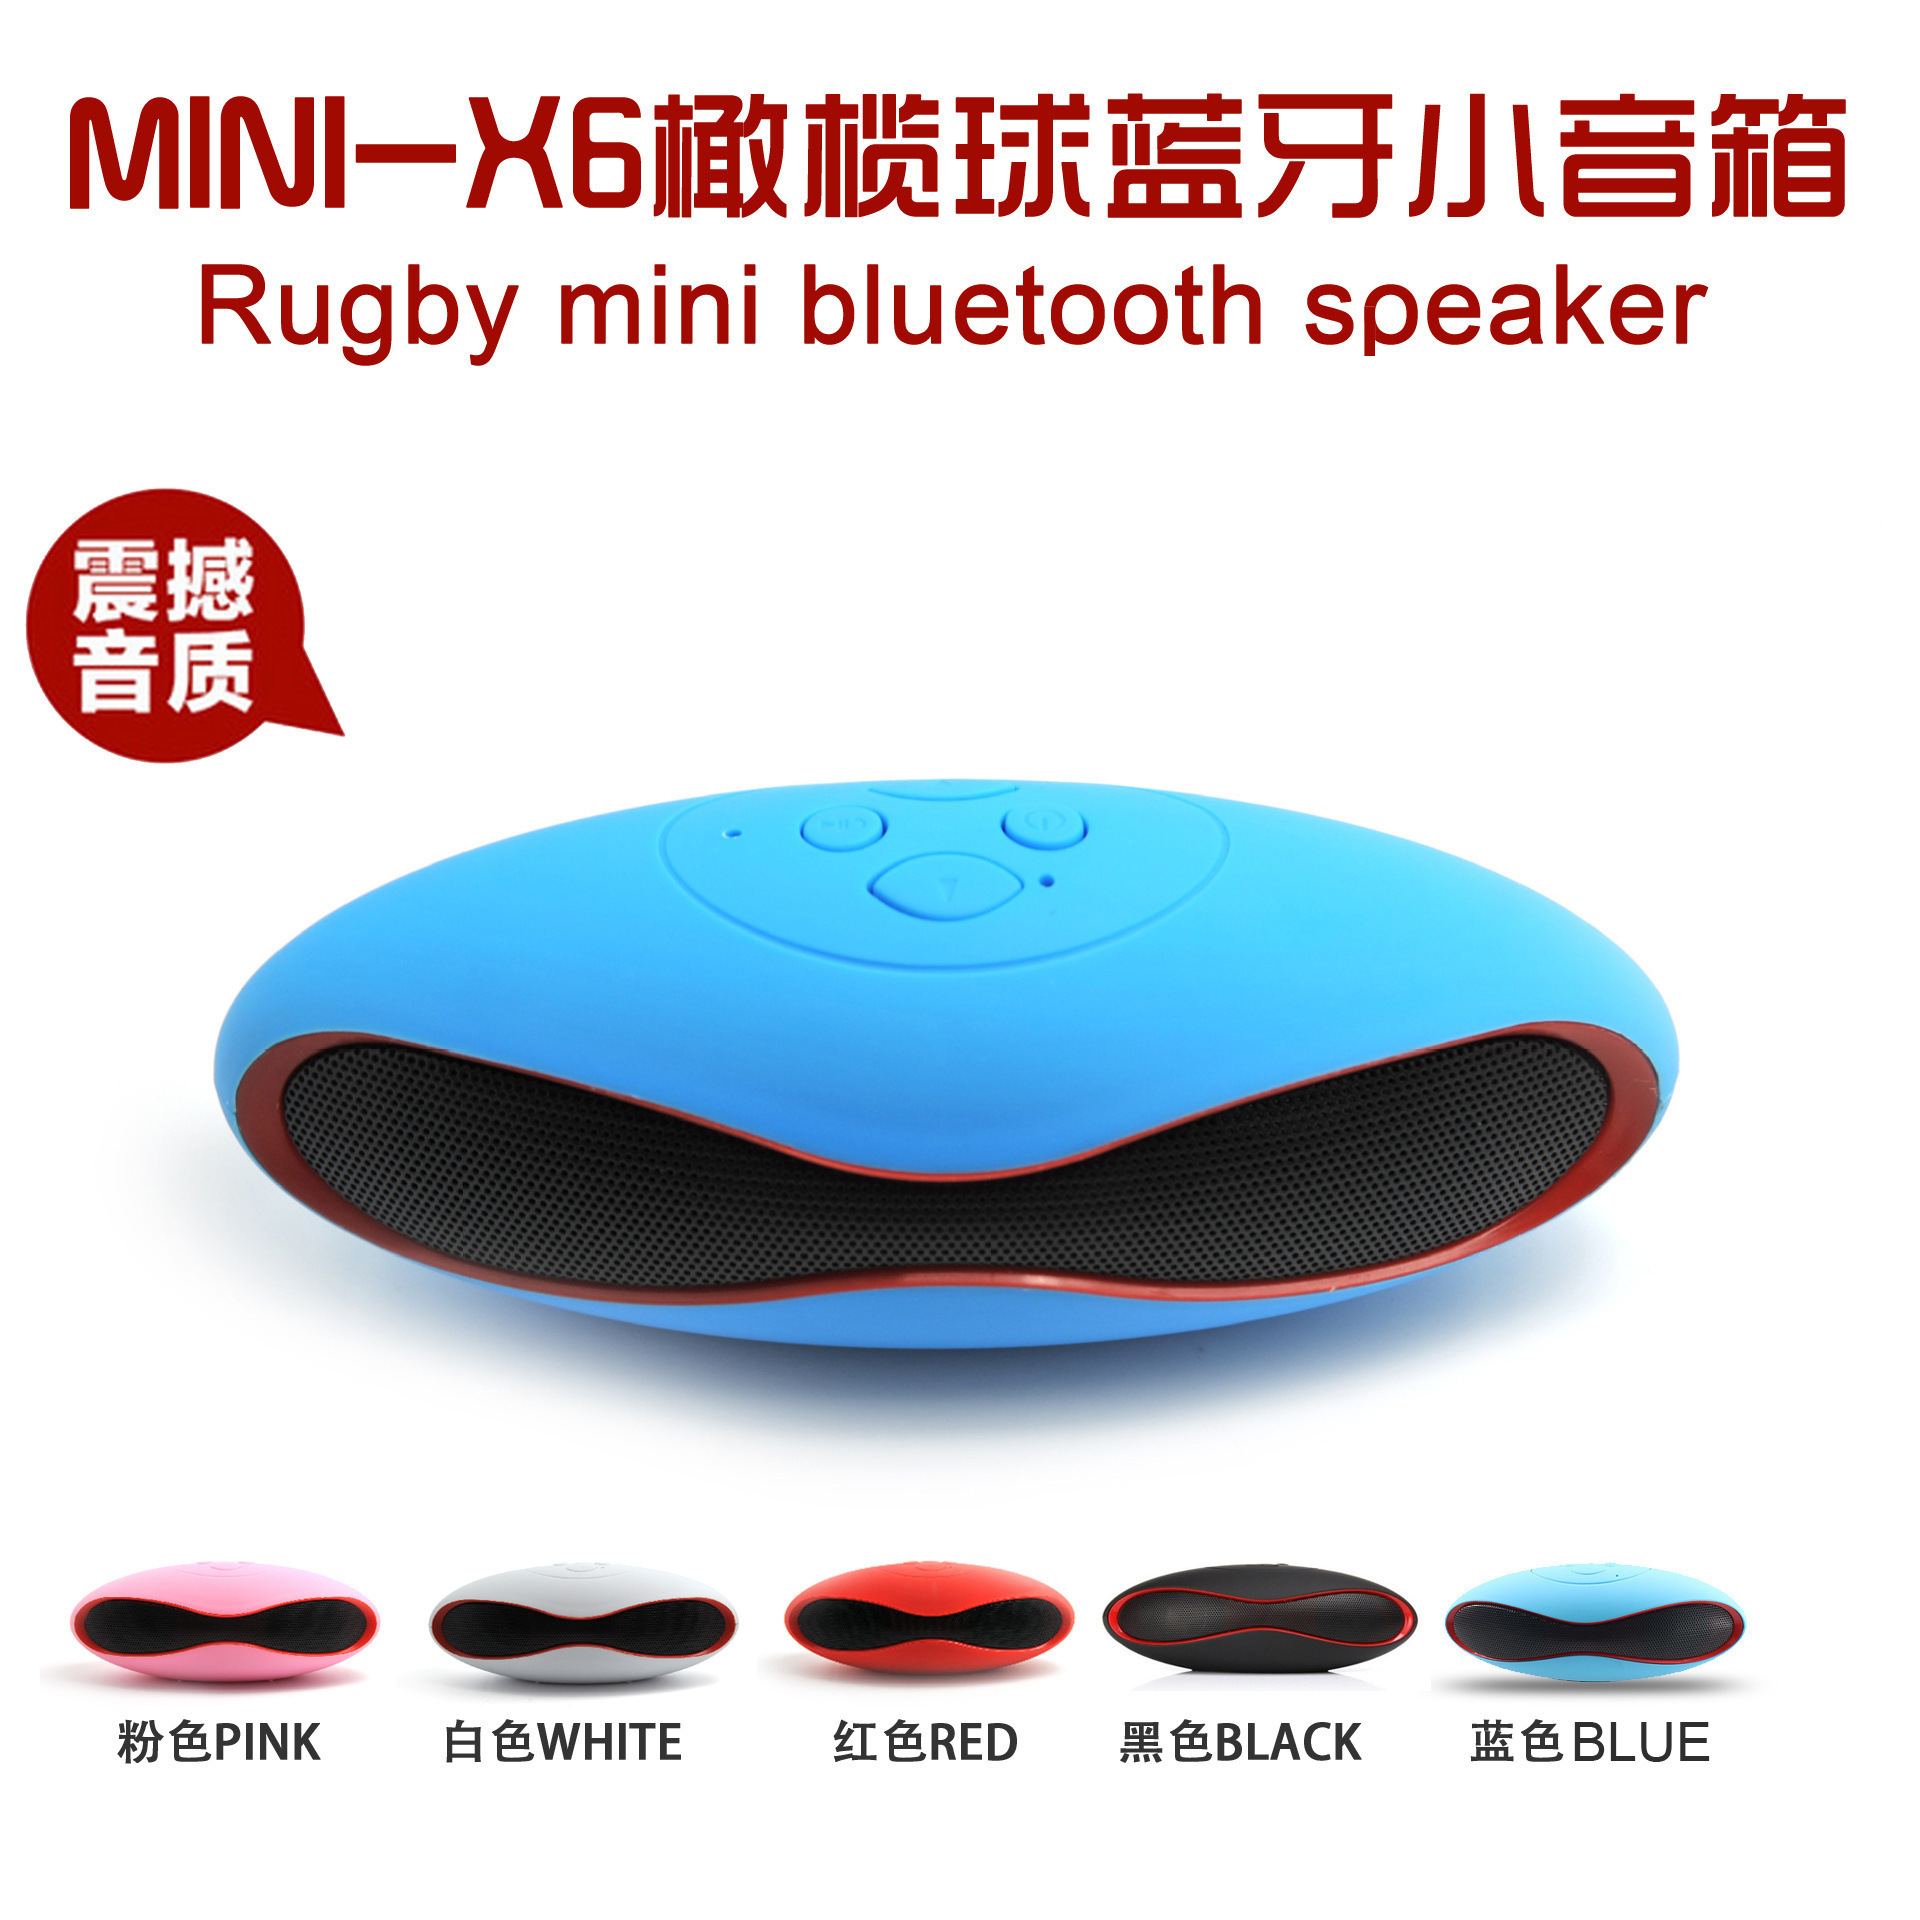 Wireless Portable Black Rugby Bluetooth Speaker Stereo Mic Super Bass FM Support